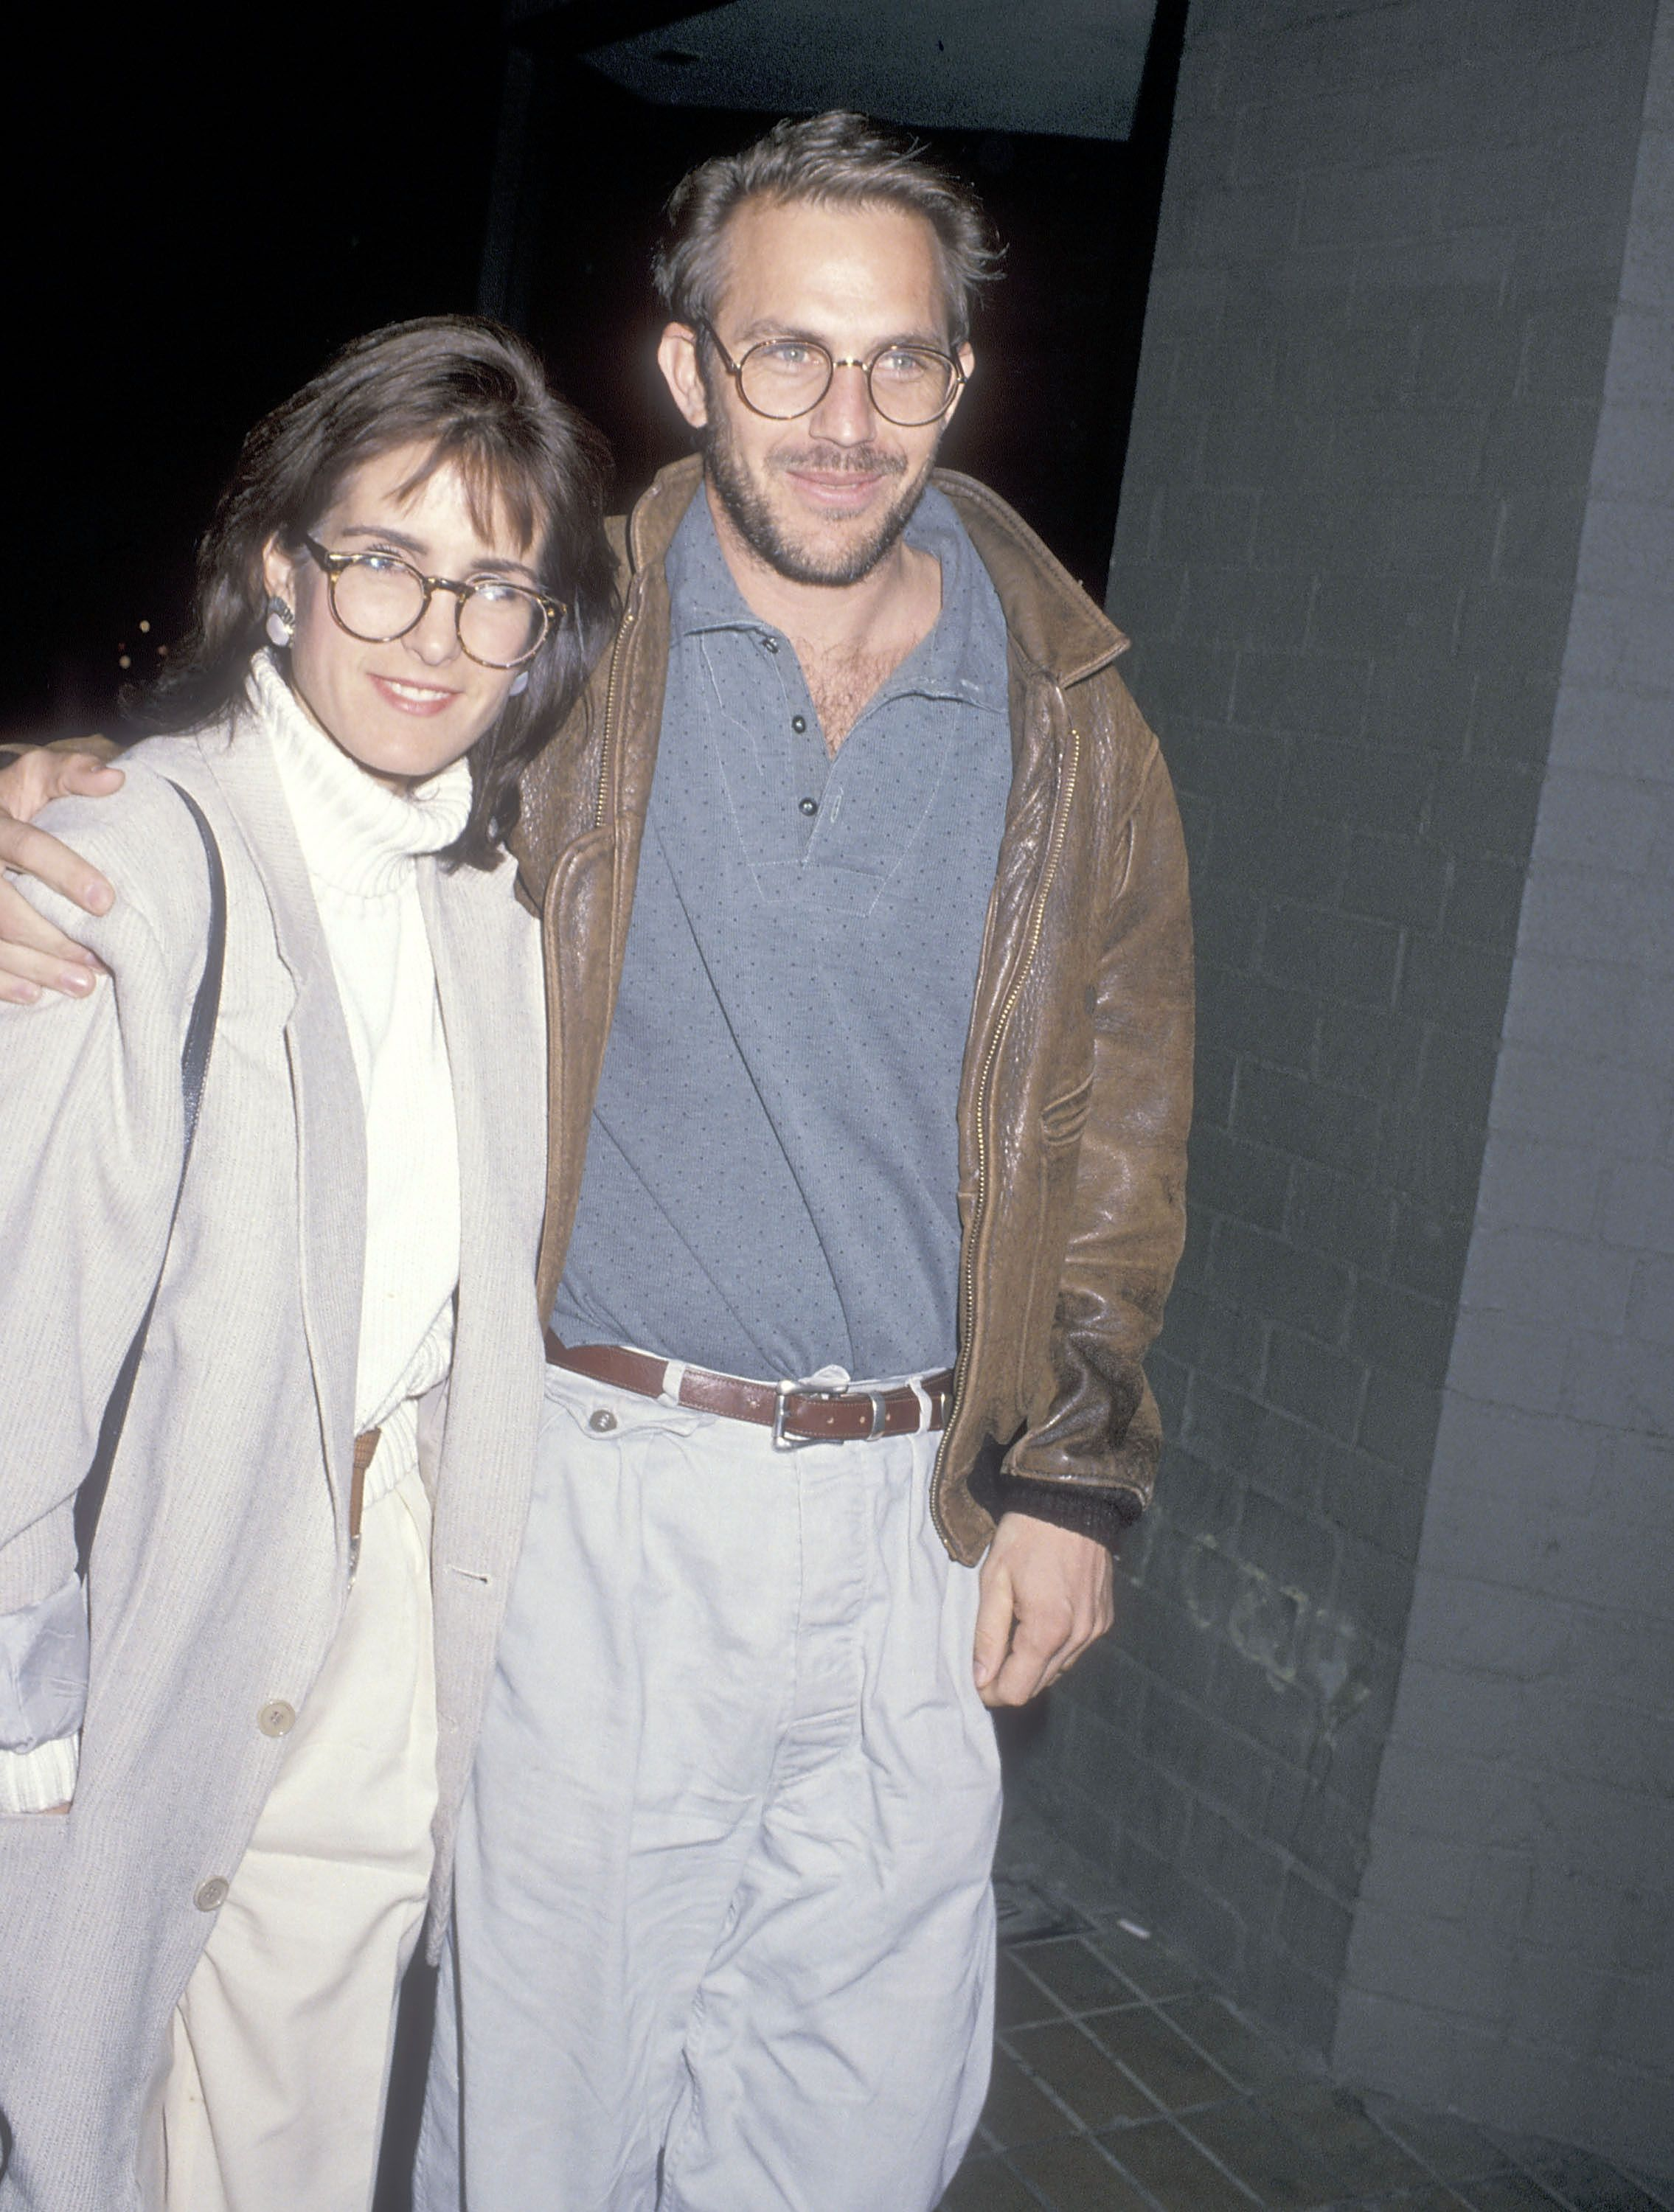 """Kevin Costner and ex-wife Cindy Costner attend a performance of the play """"Hurlyburly"""" on January 13, 1989 at the Westwood Playhouse in Westwood, California. 